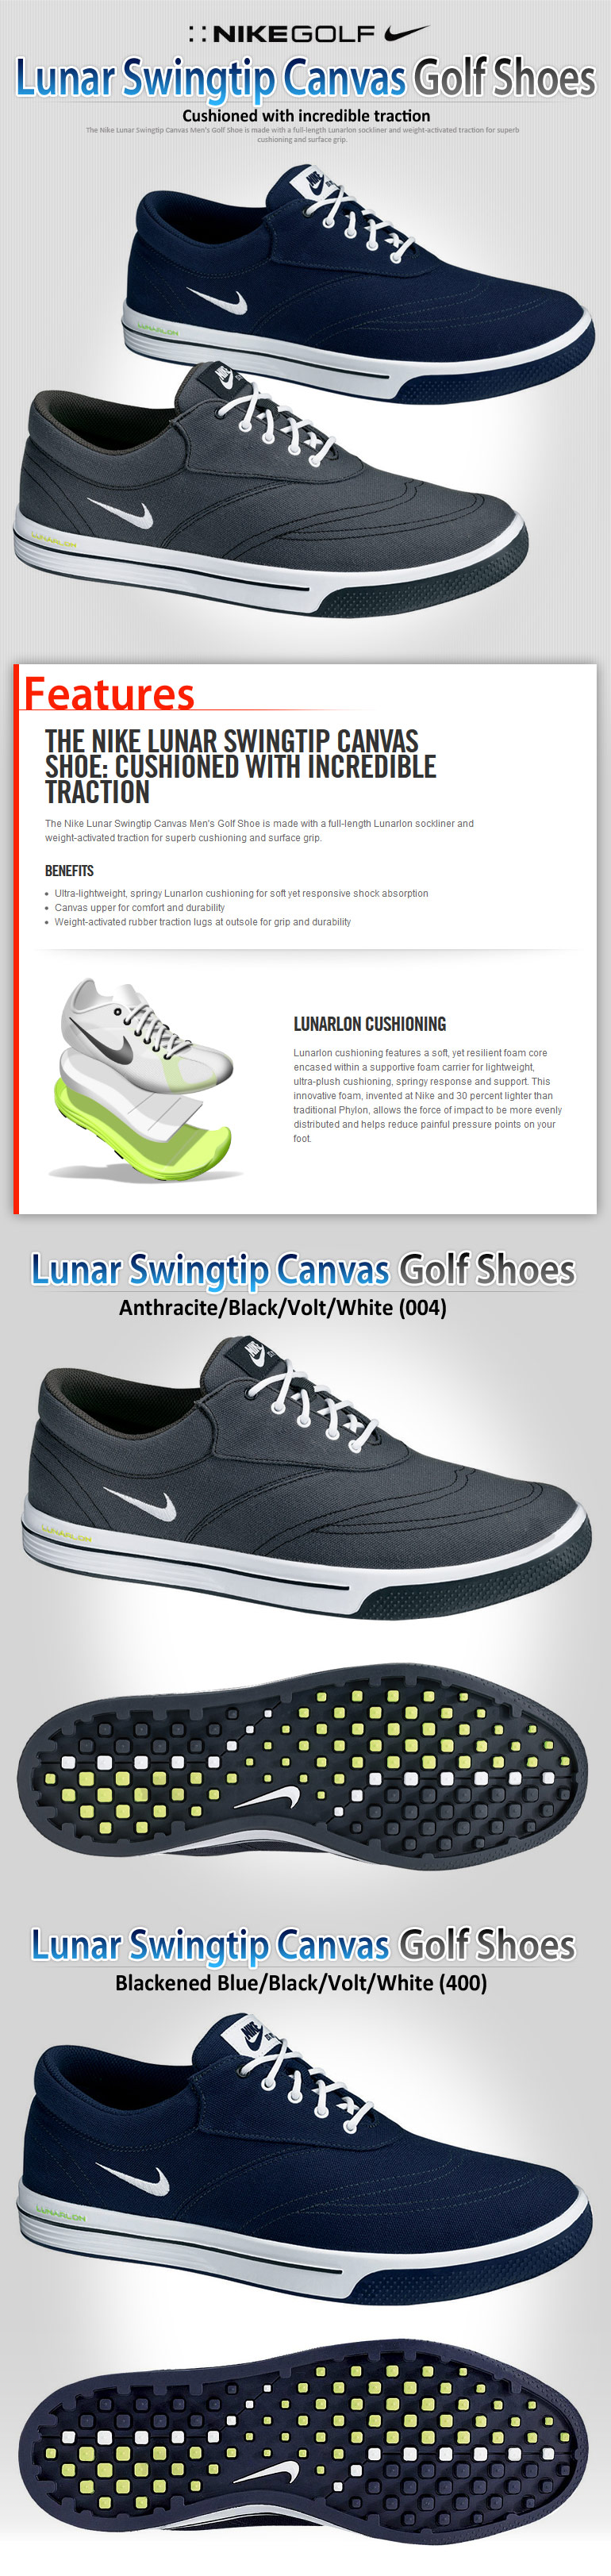 new styles 51b83 8dd44 NIKE Lunar Swingtip Canvas Men s Golf Shoes - Shoes